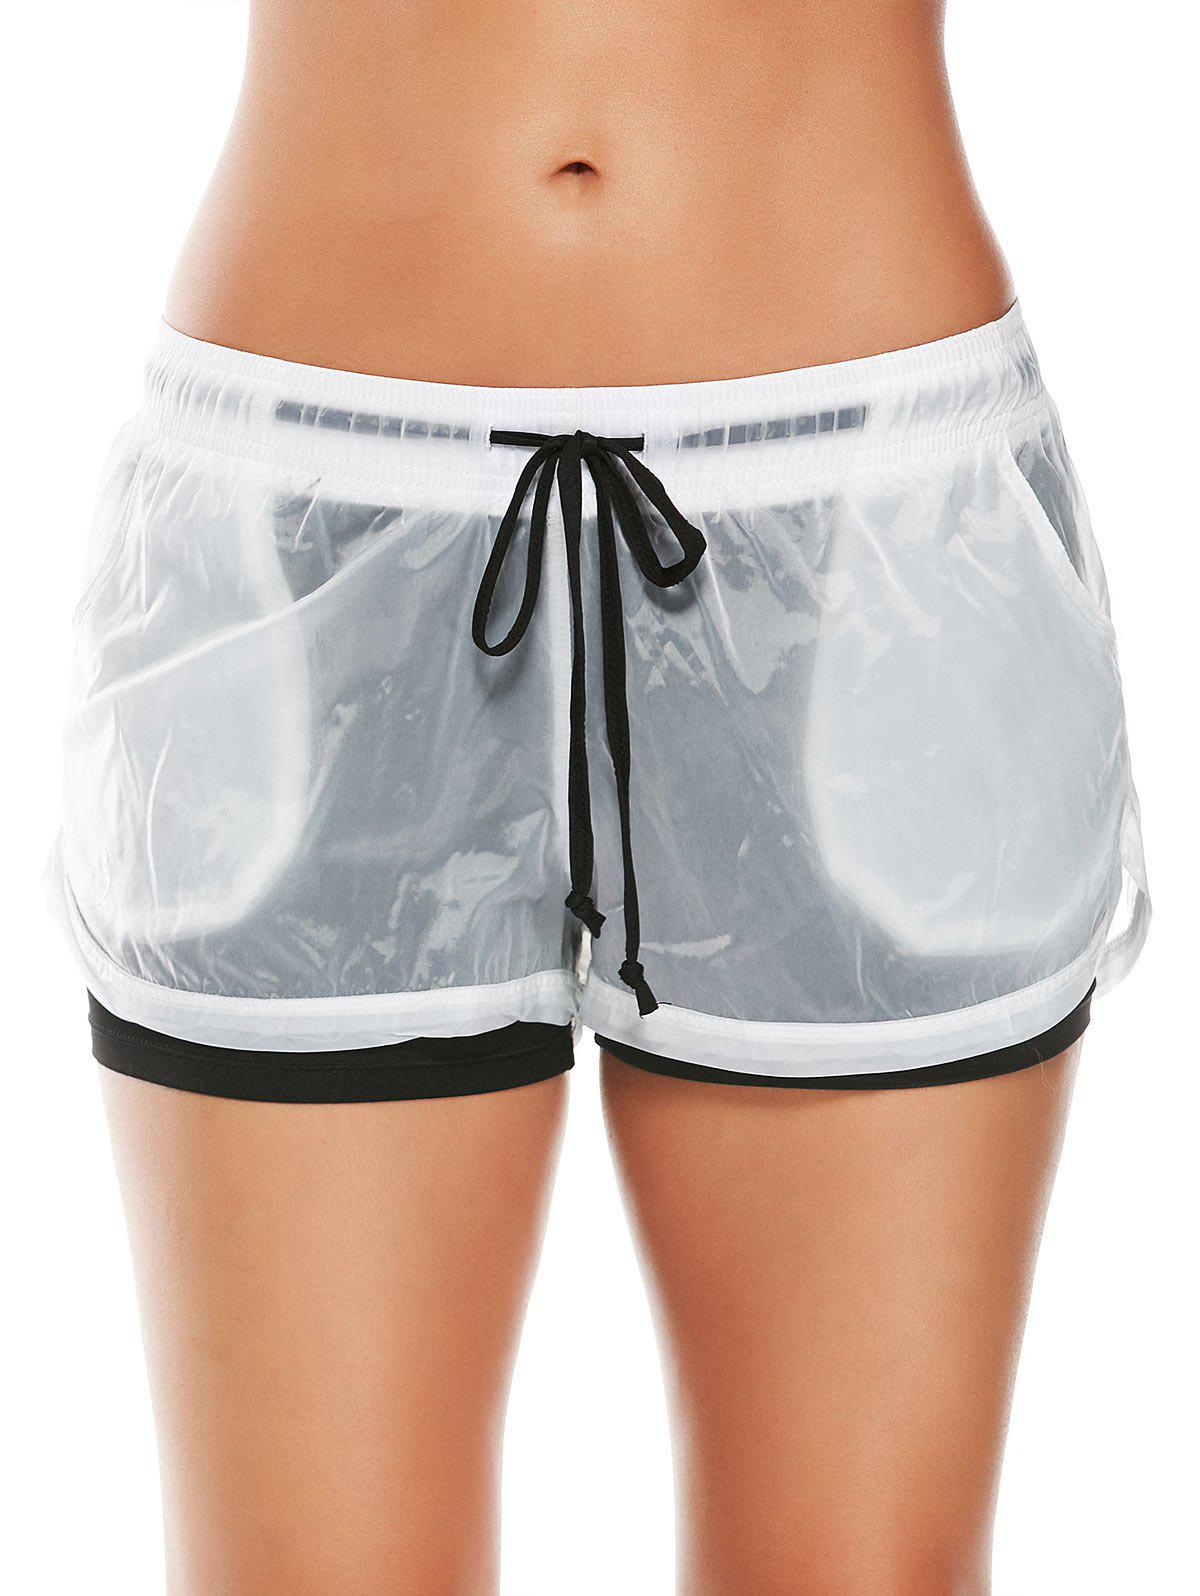 Fashion Layer Sports Drawstring Running Shorts